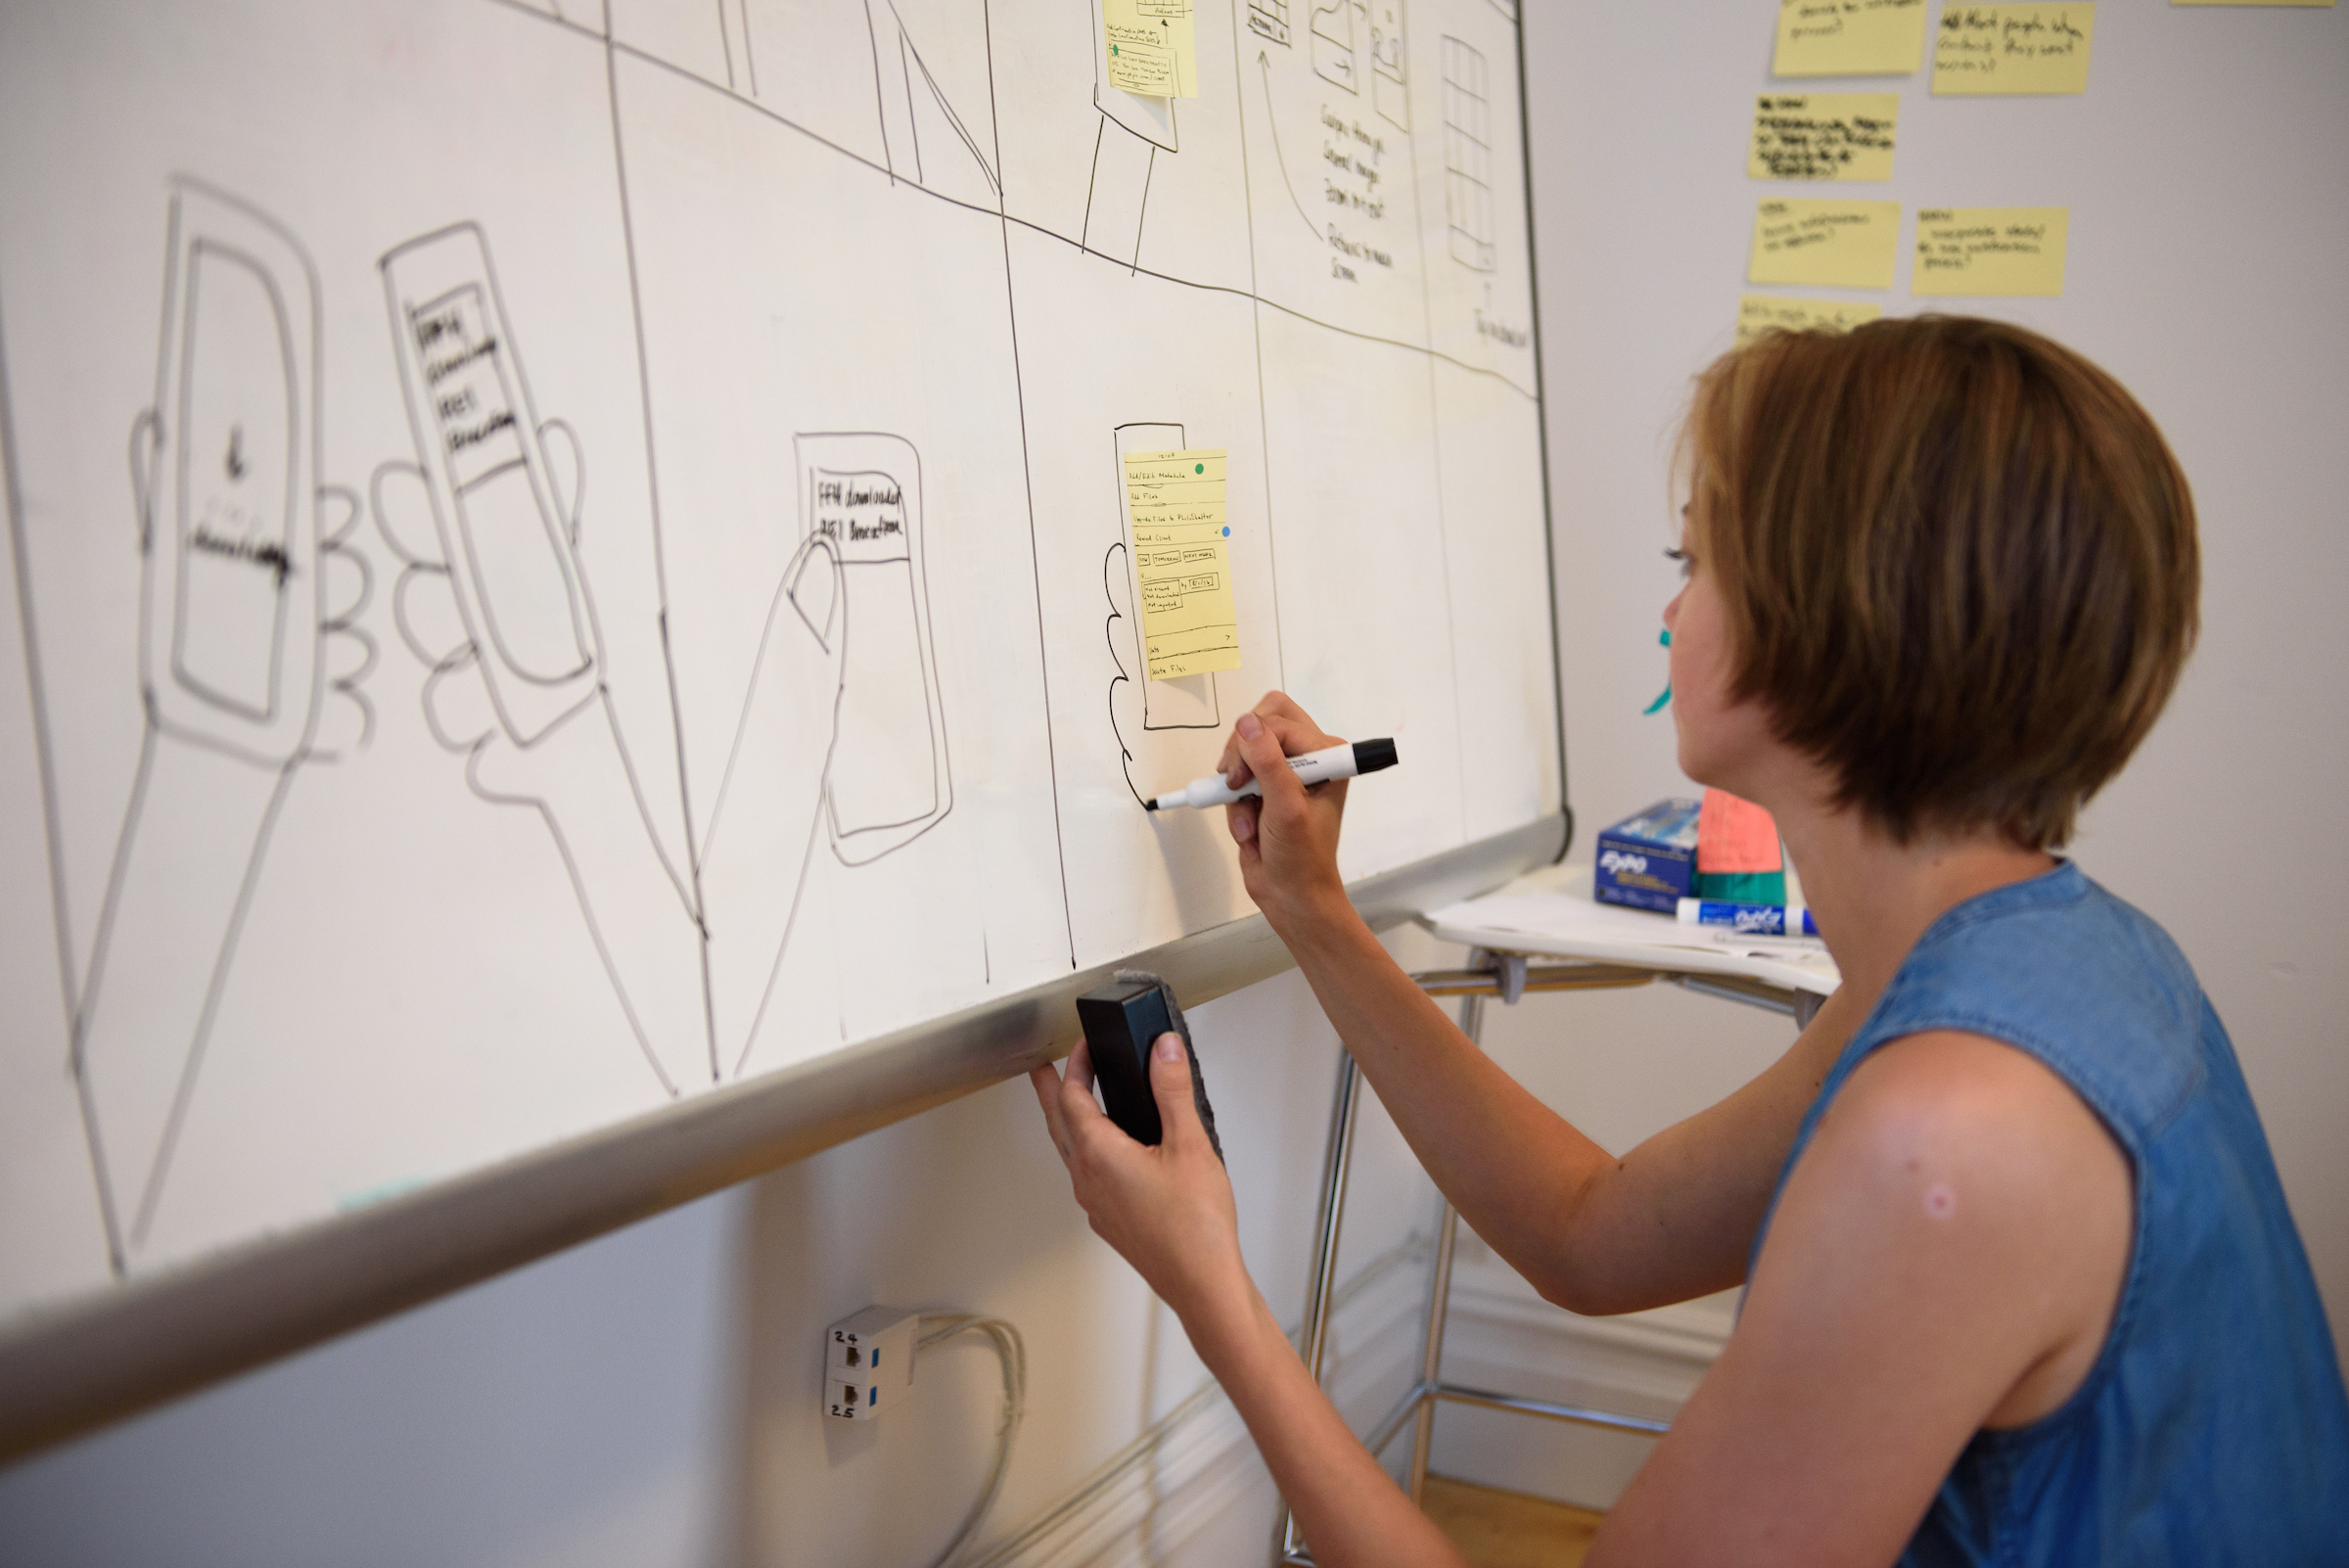 Kim Burgas drawing a hand on a whiteboard. The whiteboard is covered in storyboard illustrations and a sticky note.